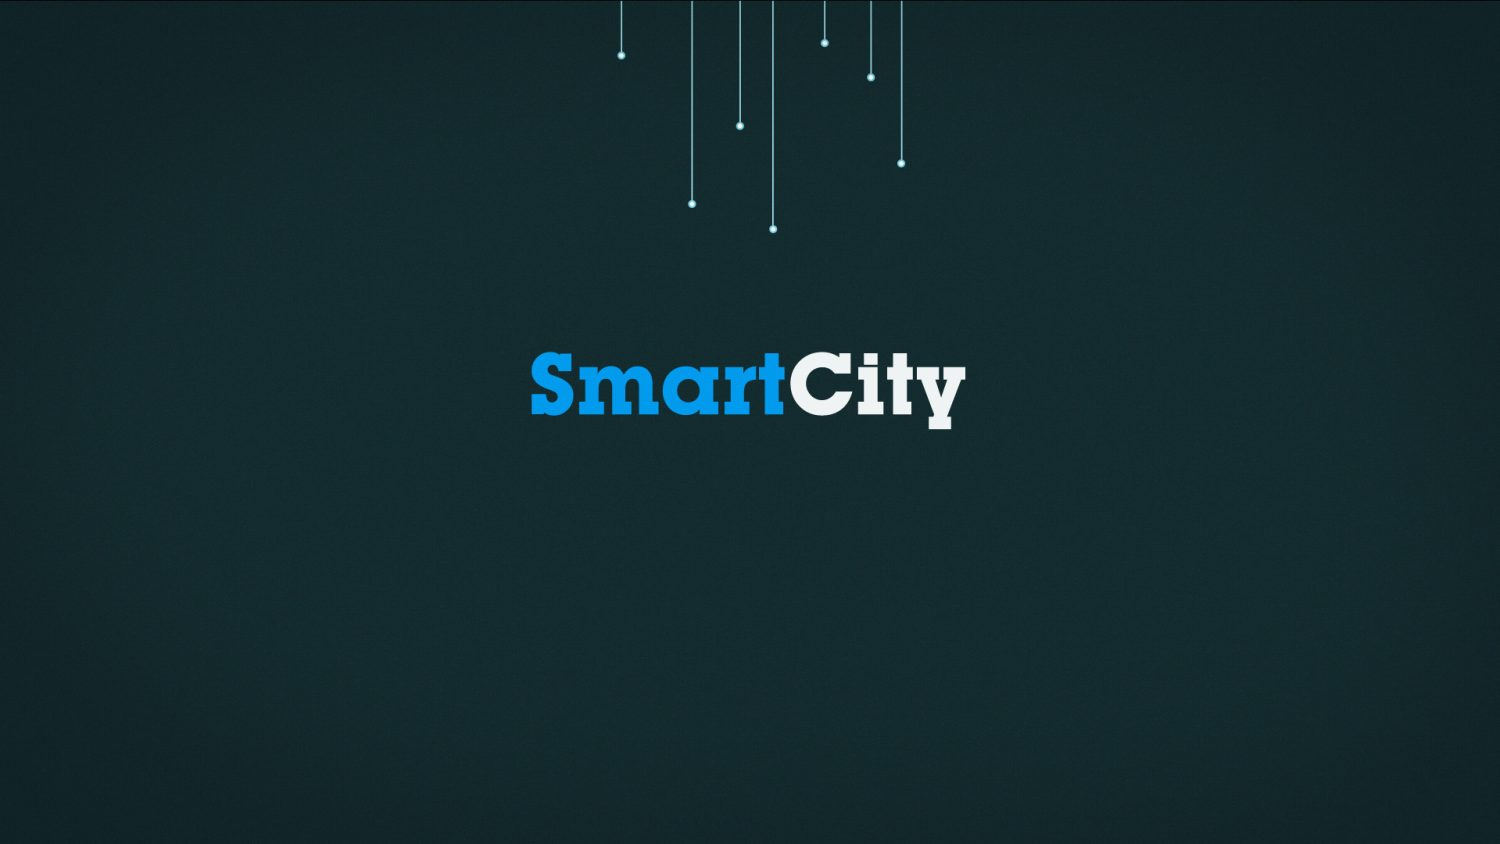 Ecran de fin de l'animation avec le titre : Smart City